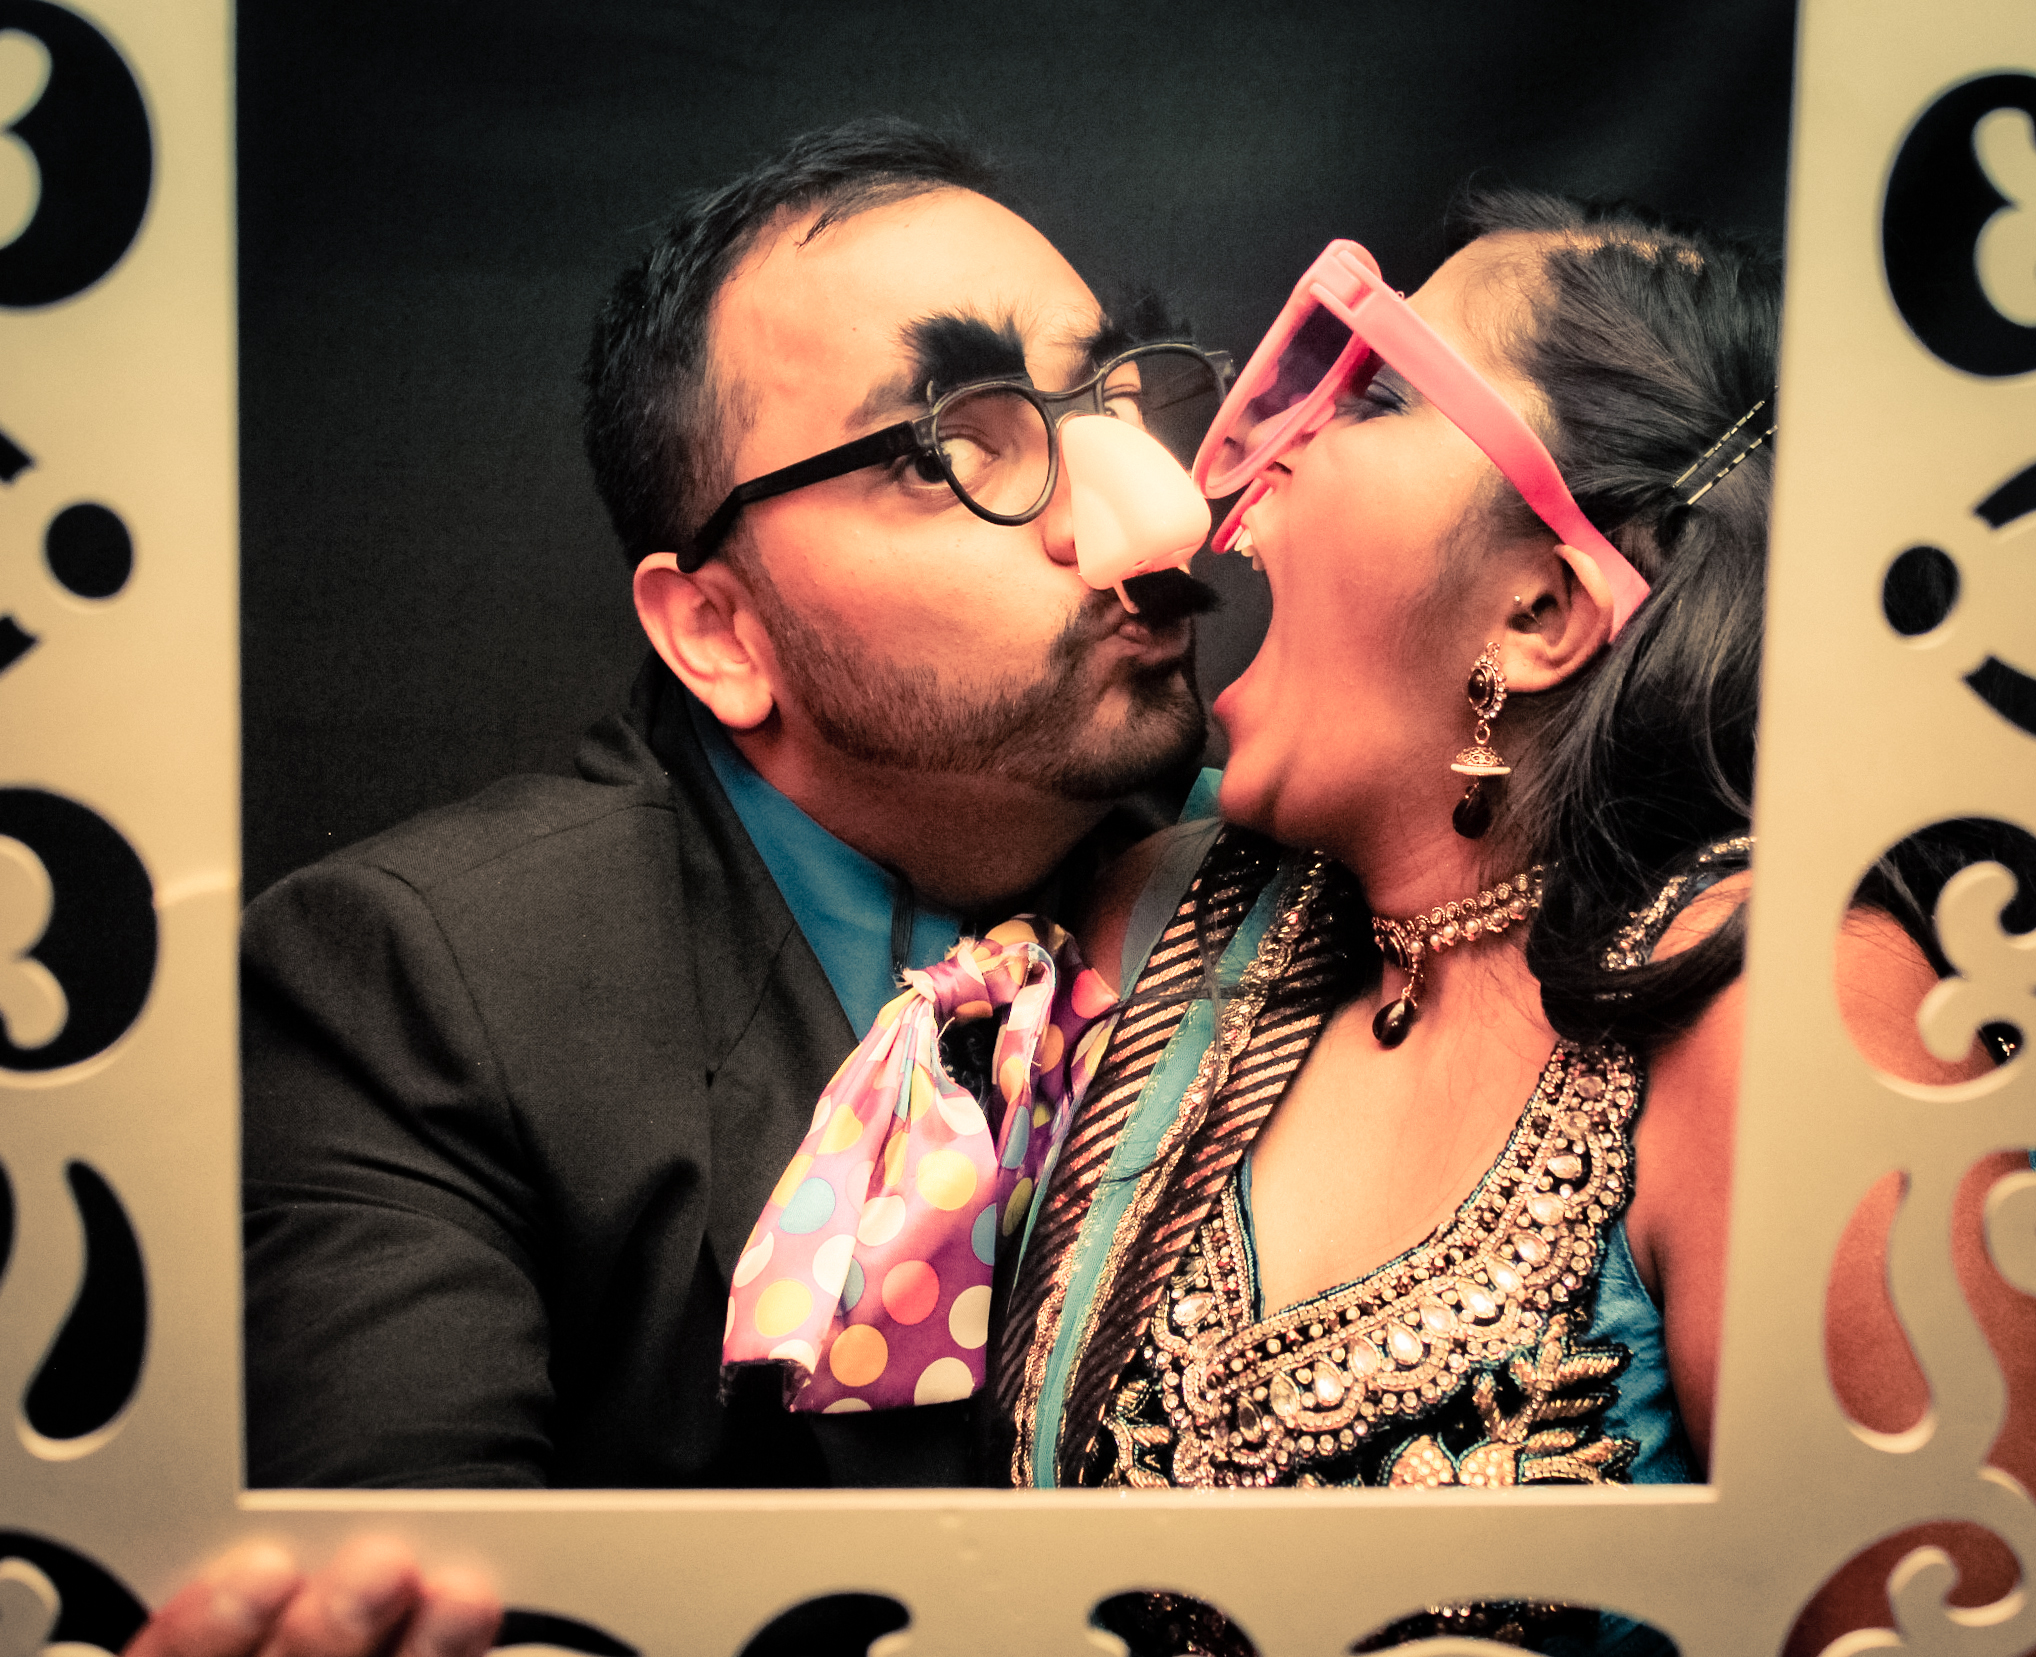 scott roth events top photo booth photos 2013 4.jpg